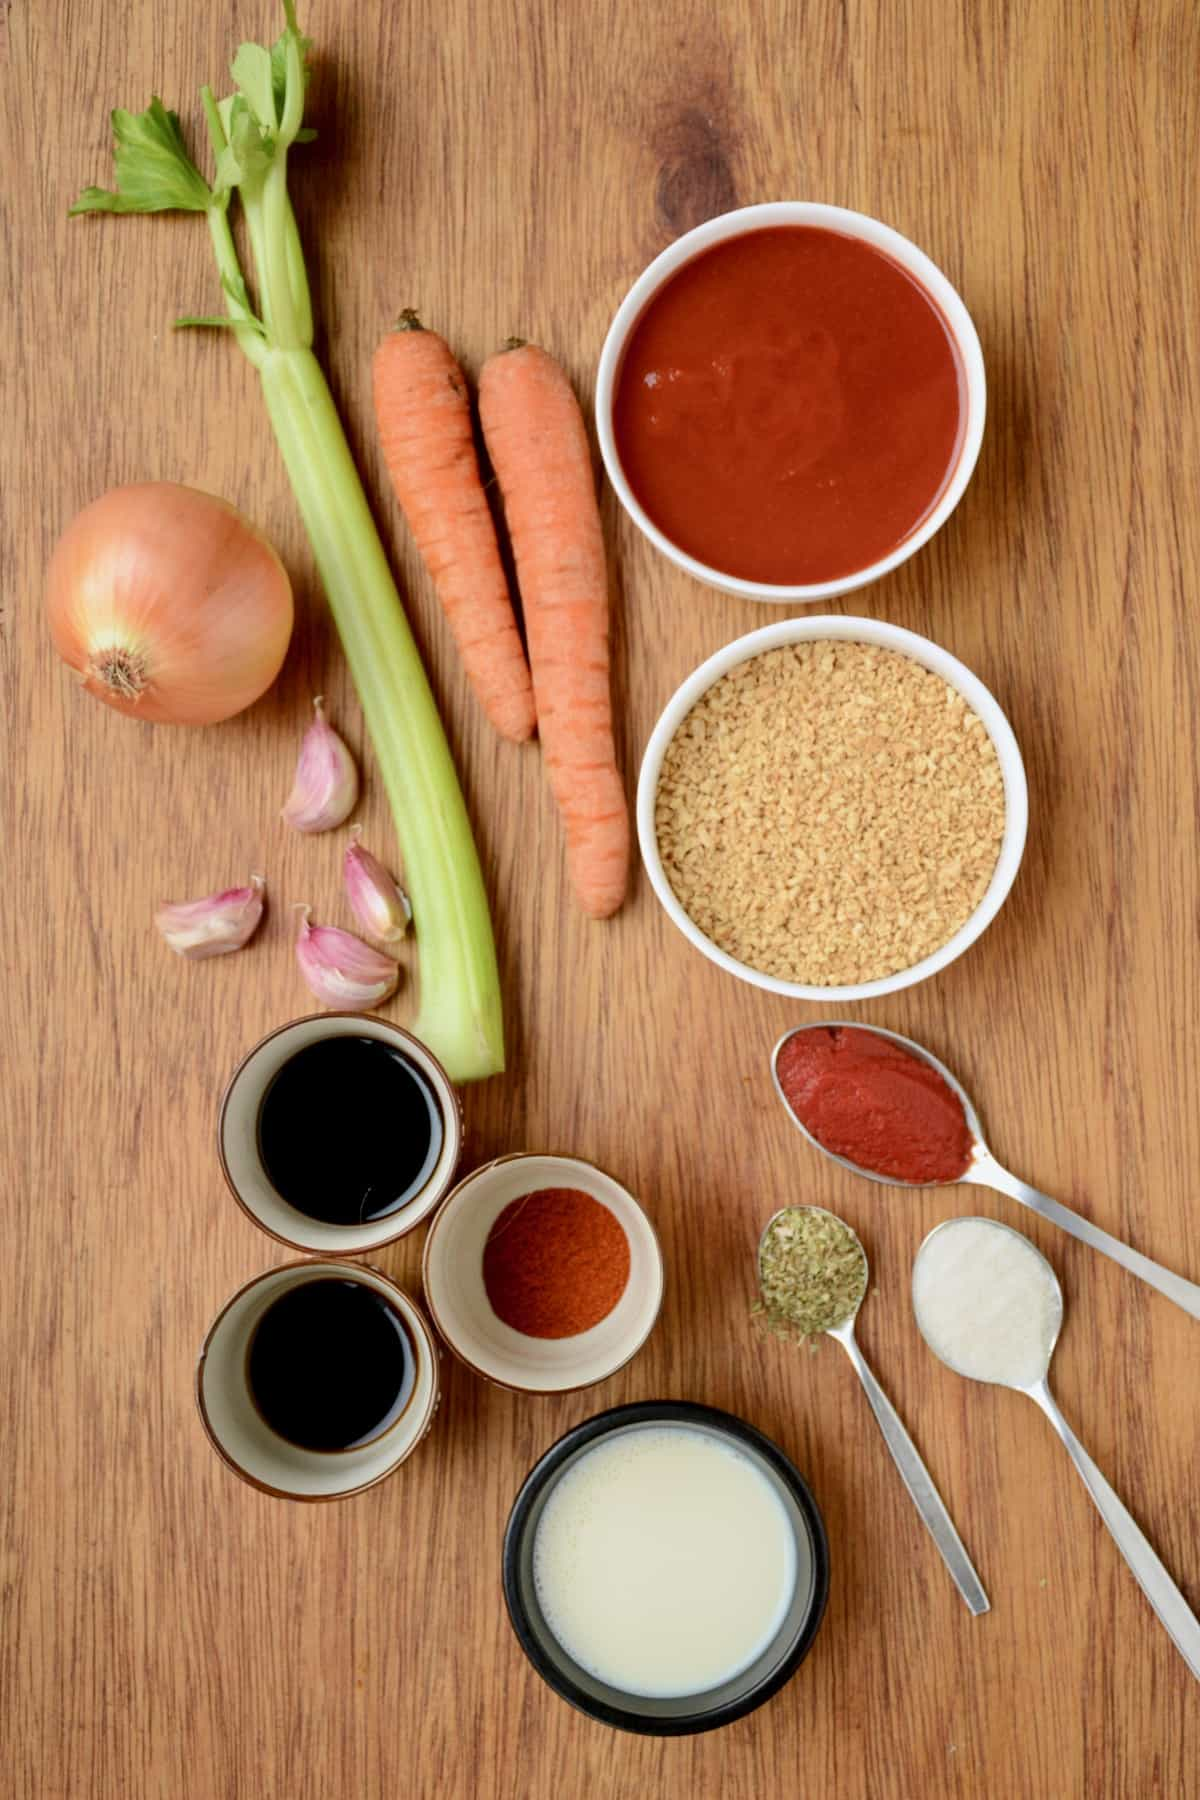 The ingredients for the vegan bolognese sauce laid out on a table.